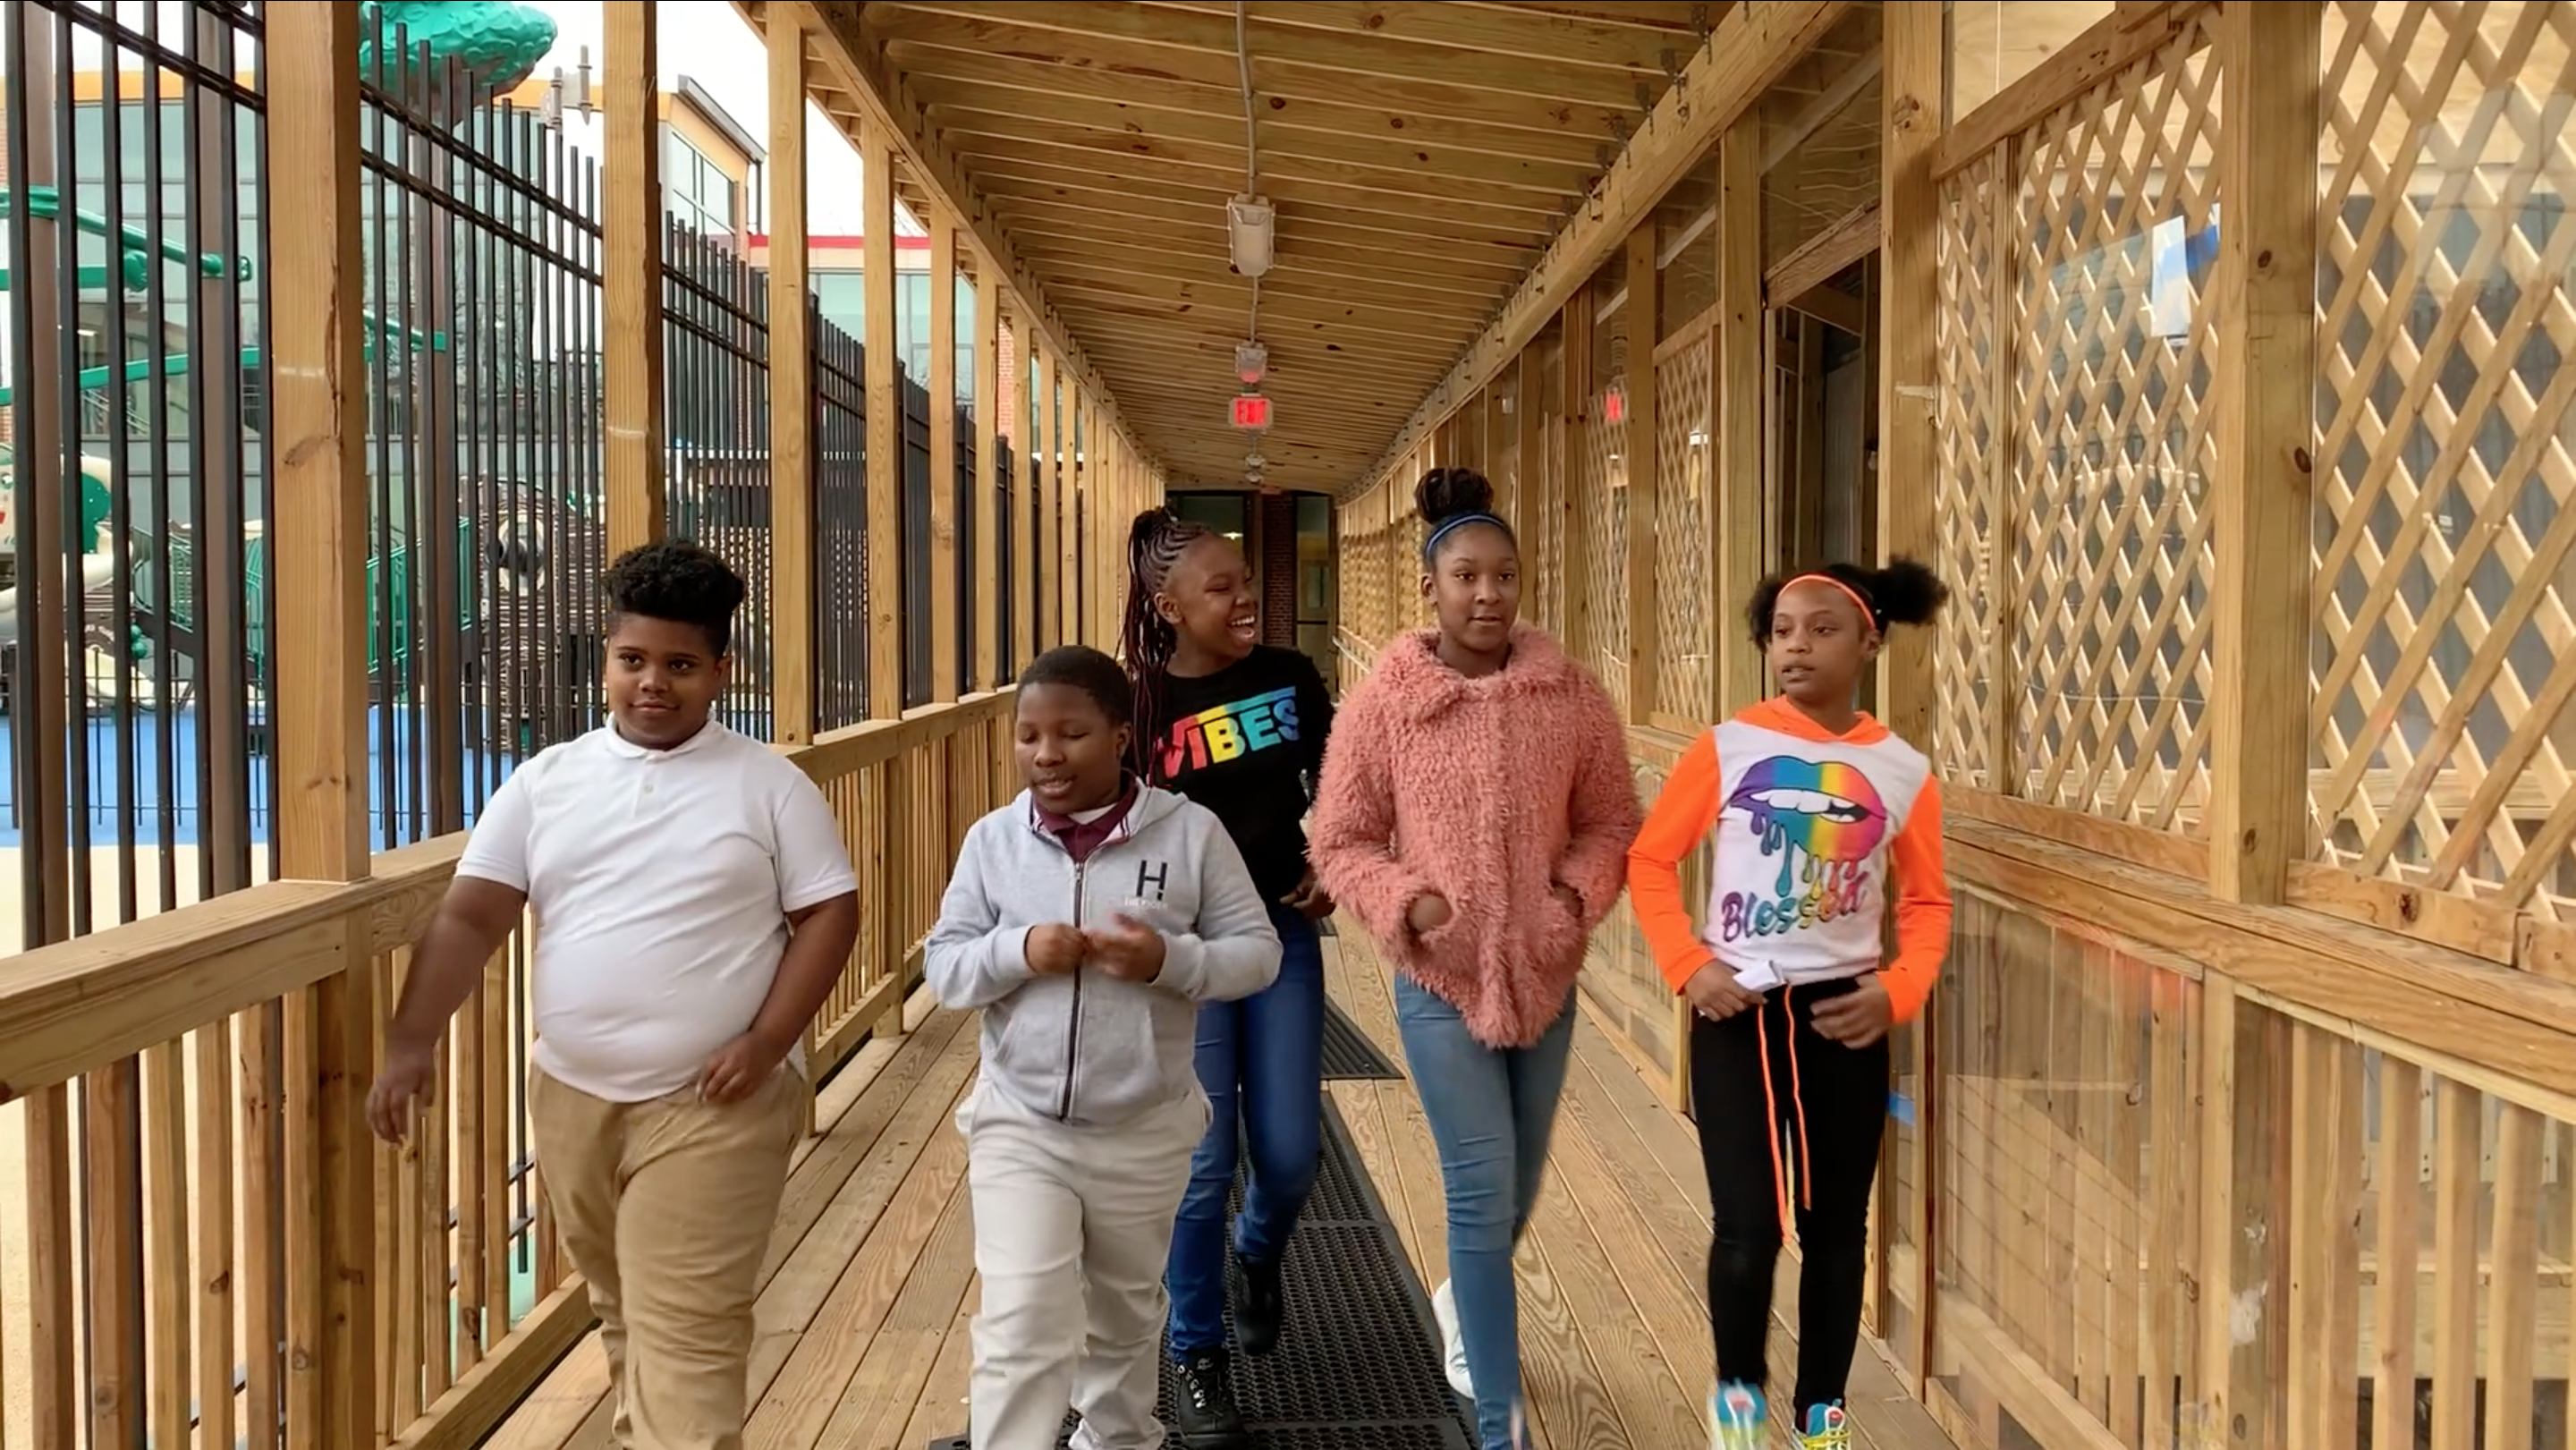 Building a Culture of Sustainability at C. W. Harris Elementary